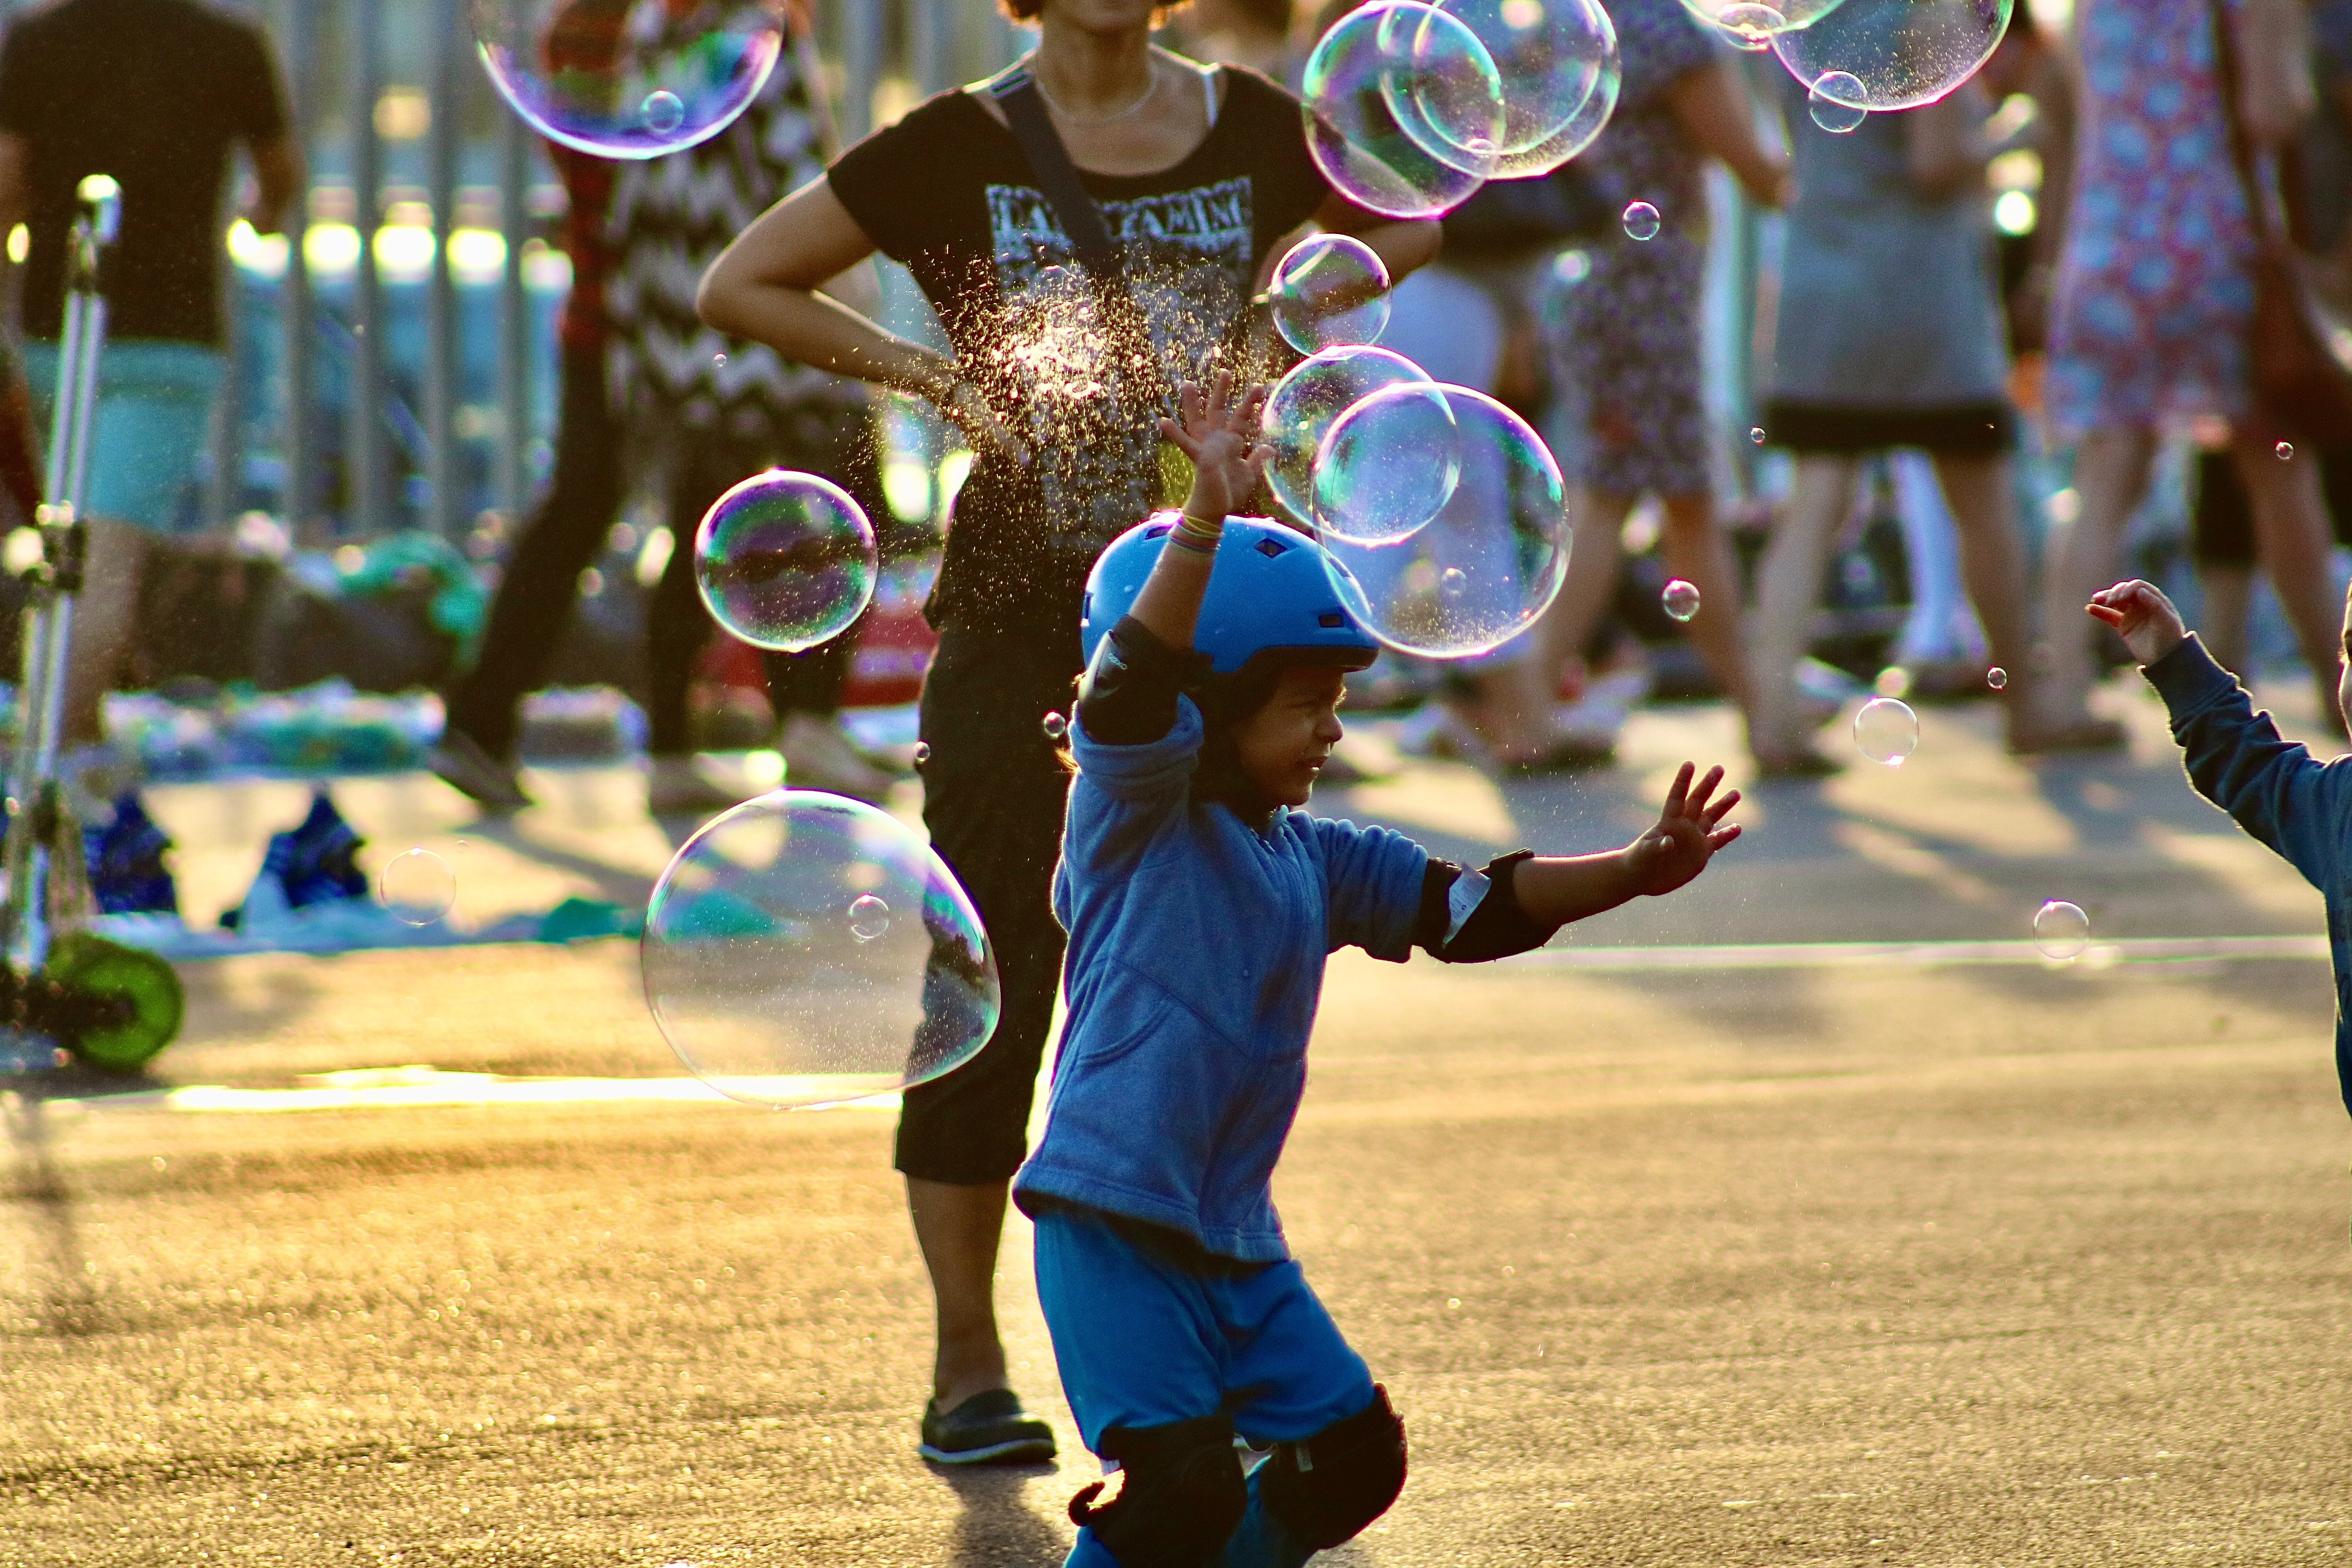 Child wearing helmet and knee pads jumping to catch bubbles in the air